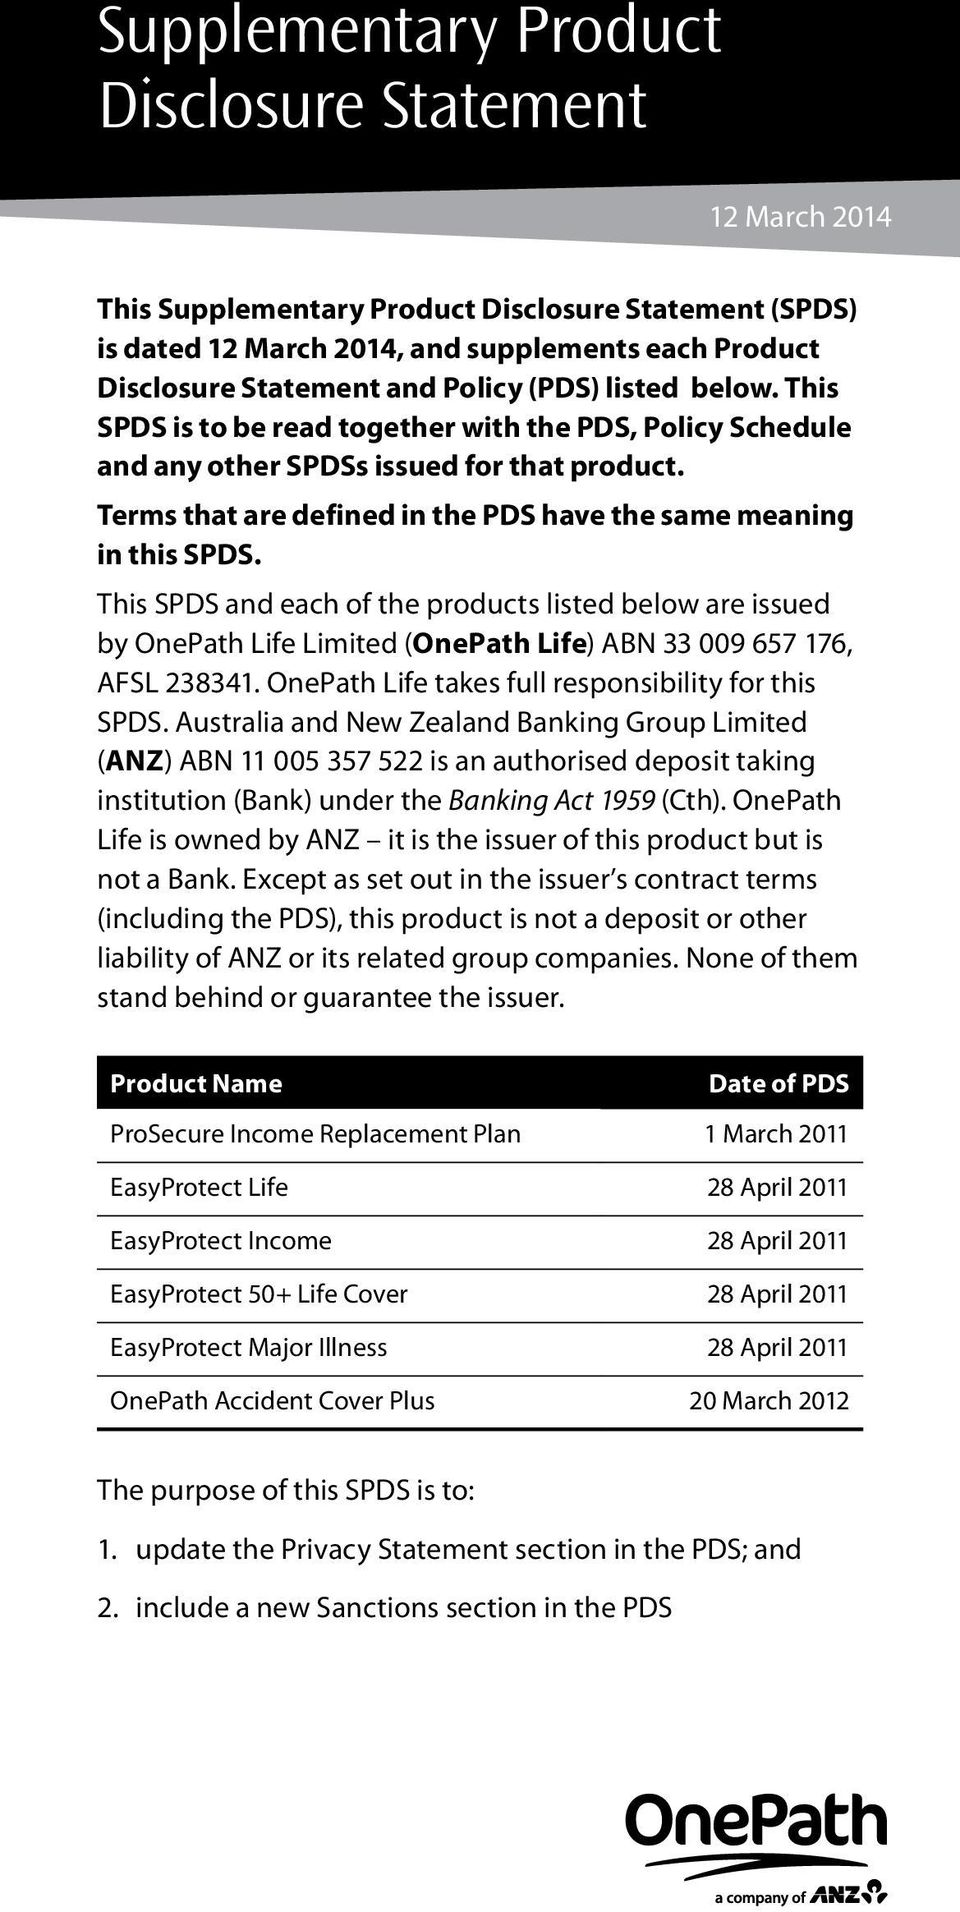 This SPDS and each of the products listed below are issued by OnePath Life Limited (OnePath Life) ABN 33 009 657 176, AFSL 238341. OnePath Life takes full responsibility for this SPDS.